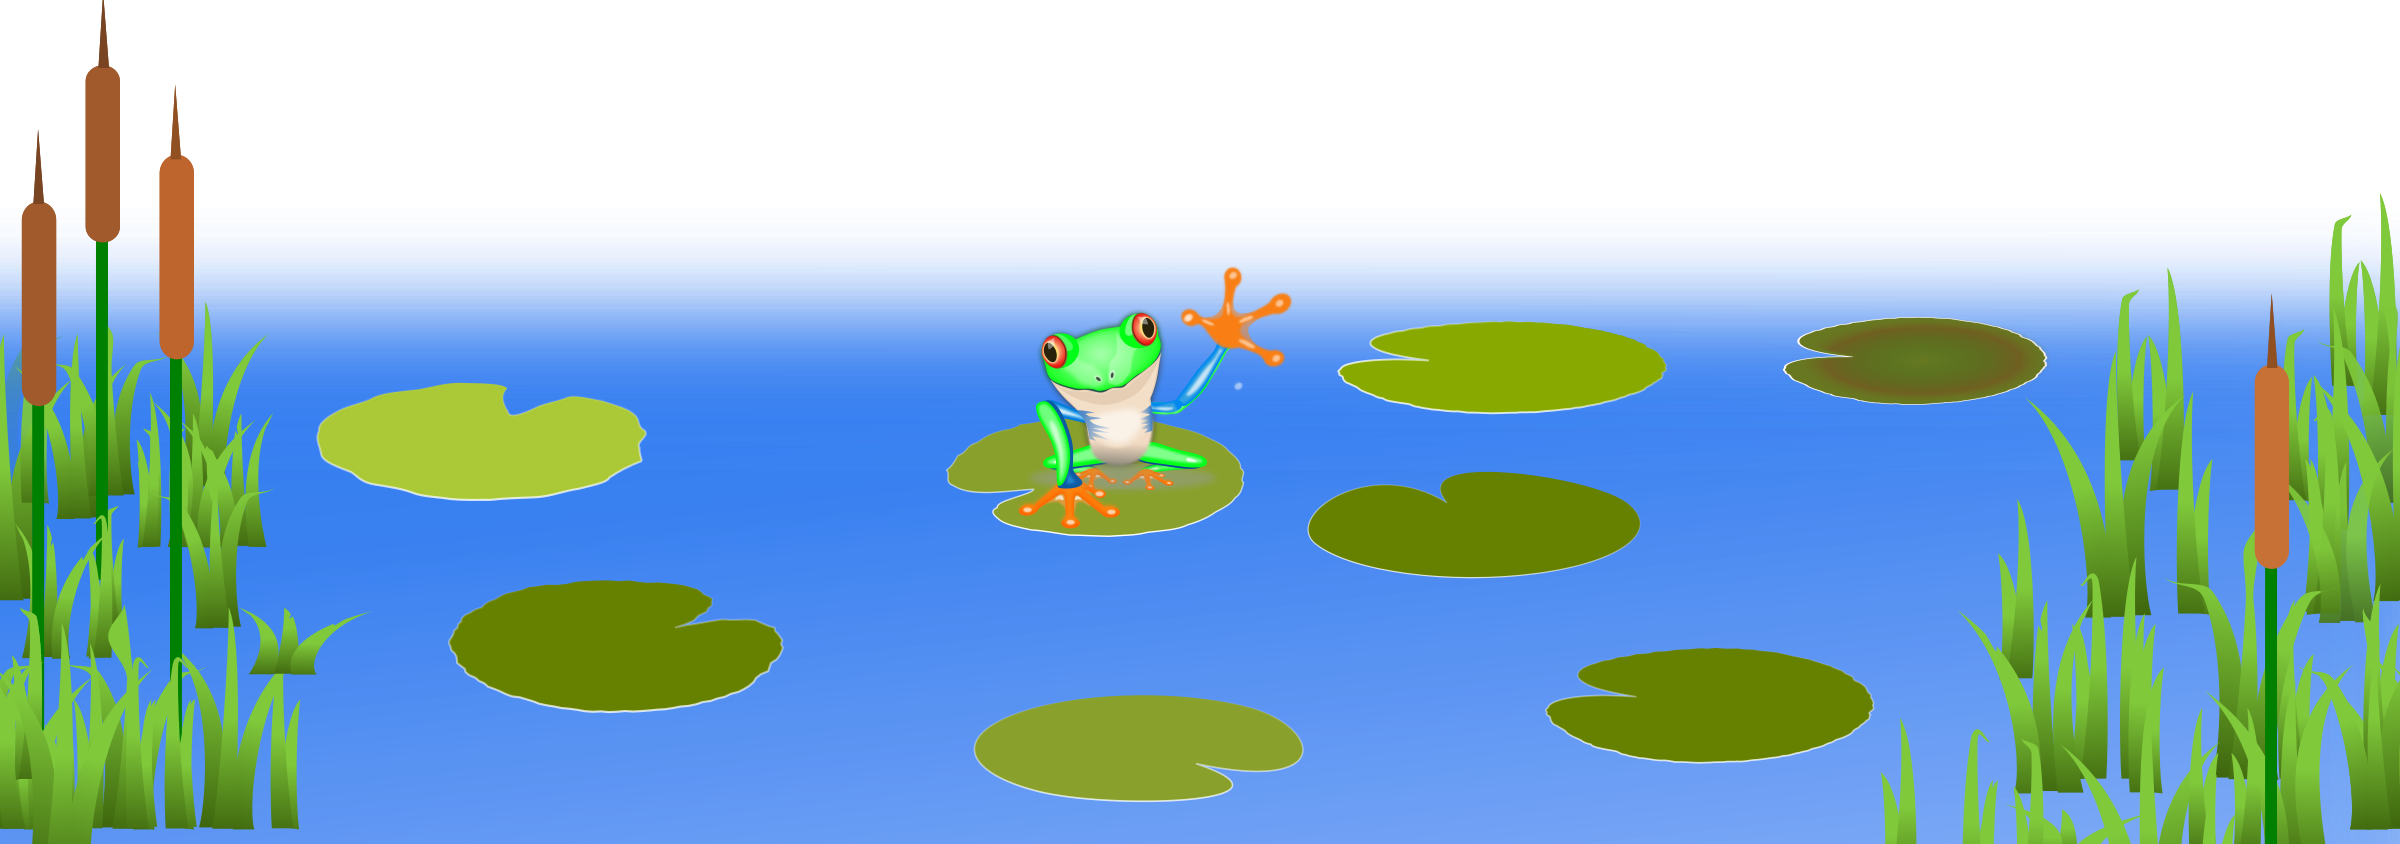 Frog On Bluish Pond by schugschug